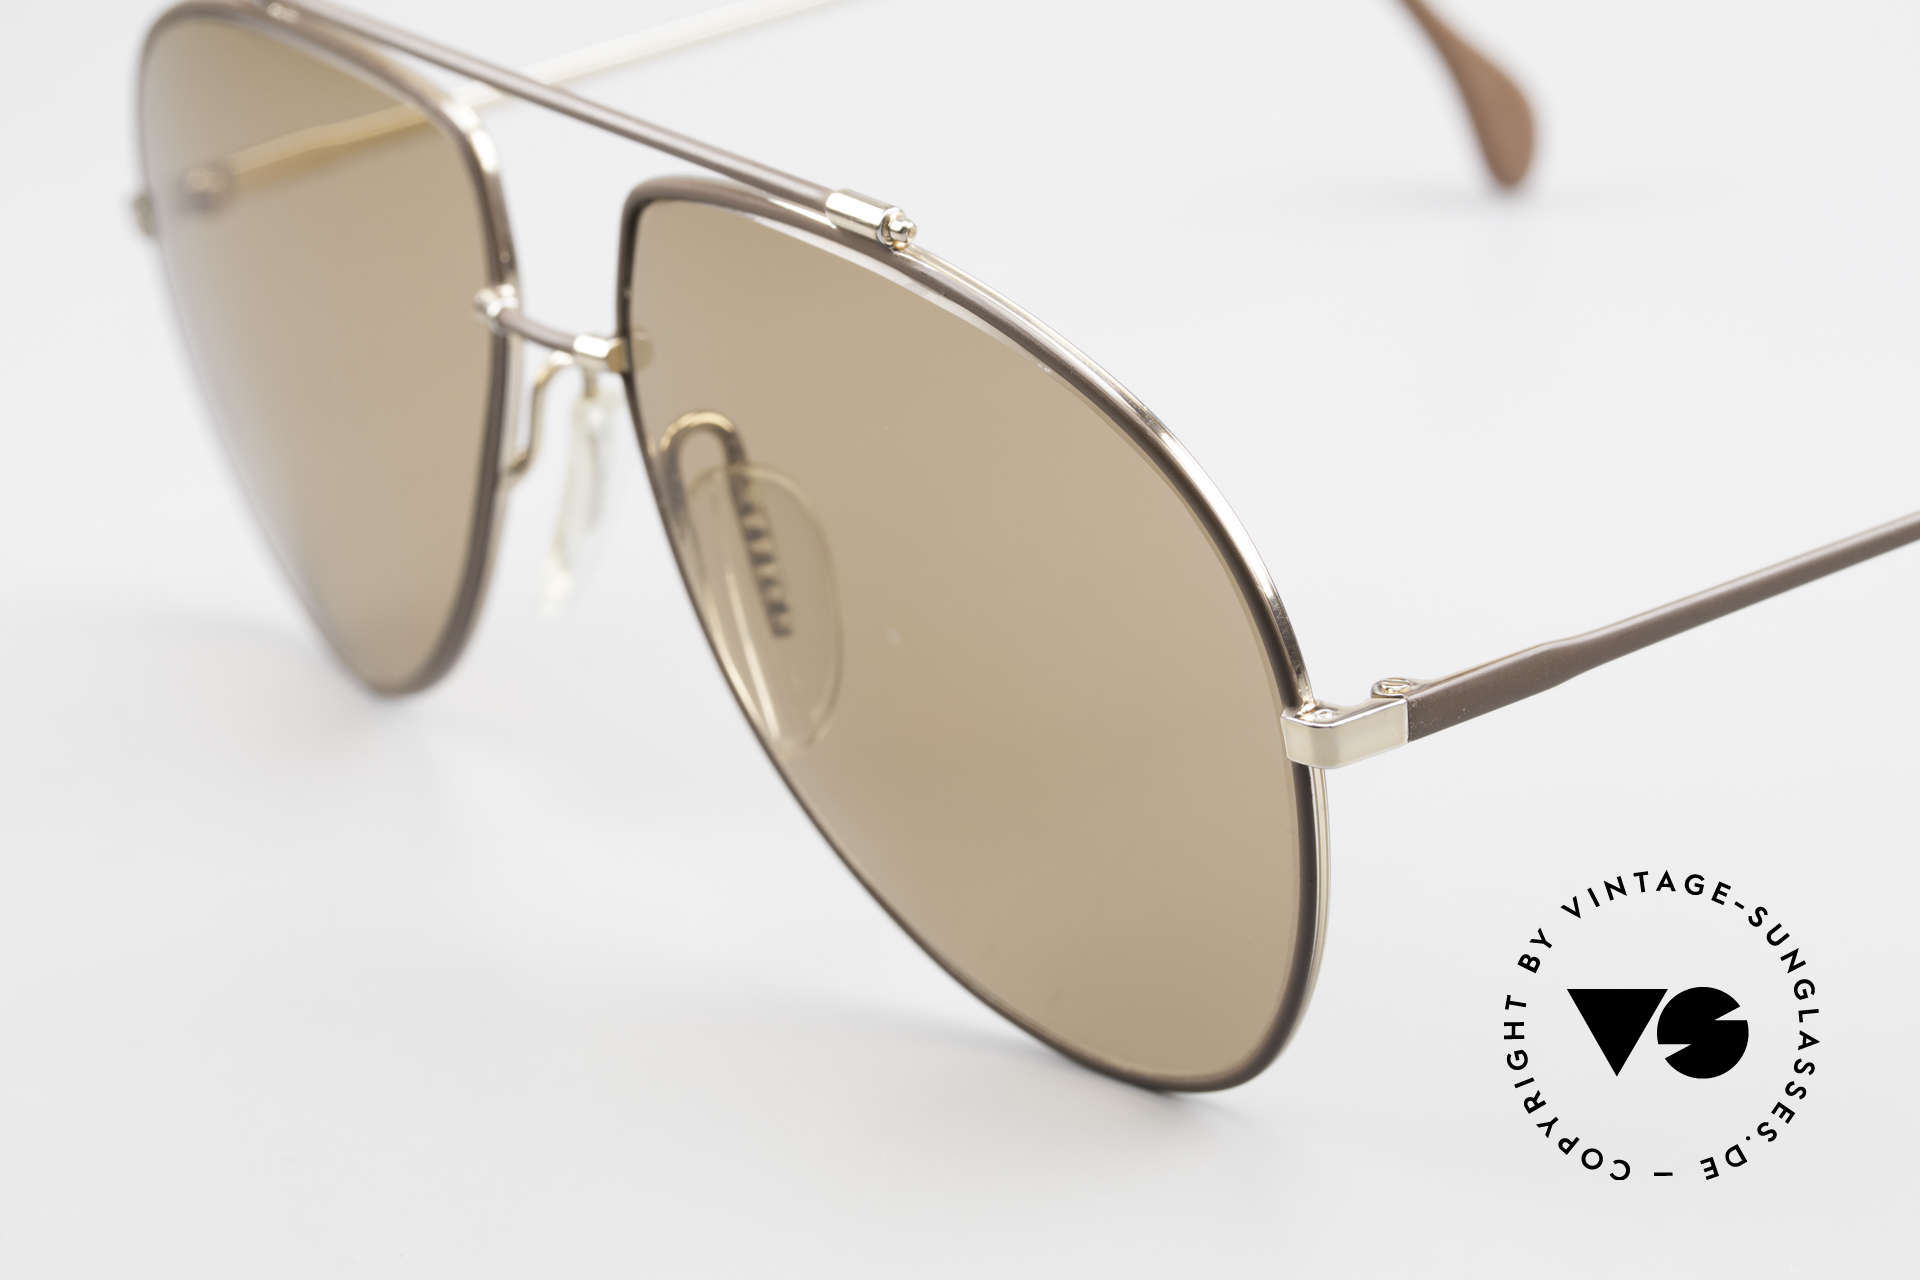 Zeiss 9371 Old 80's Quality Sunglasses, highest manufacturing standard (You must feel this!), Made for Men